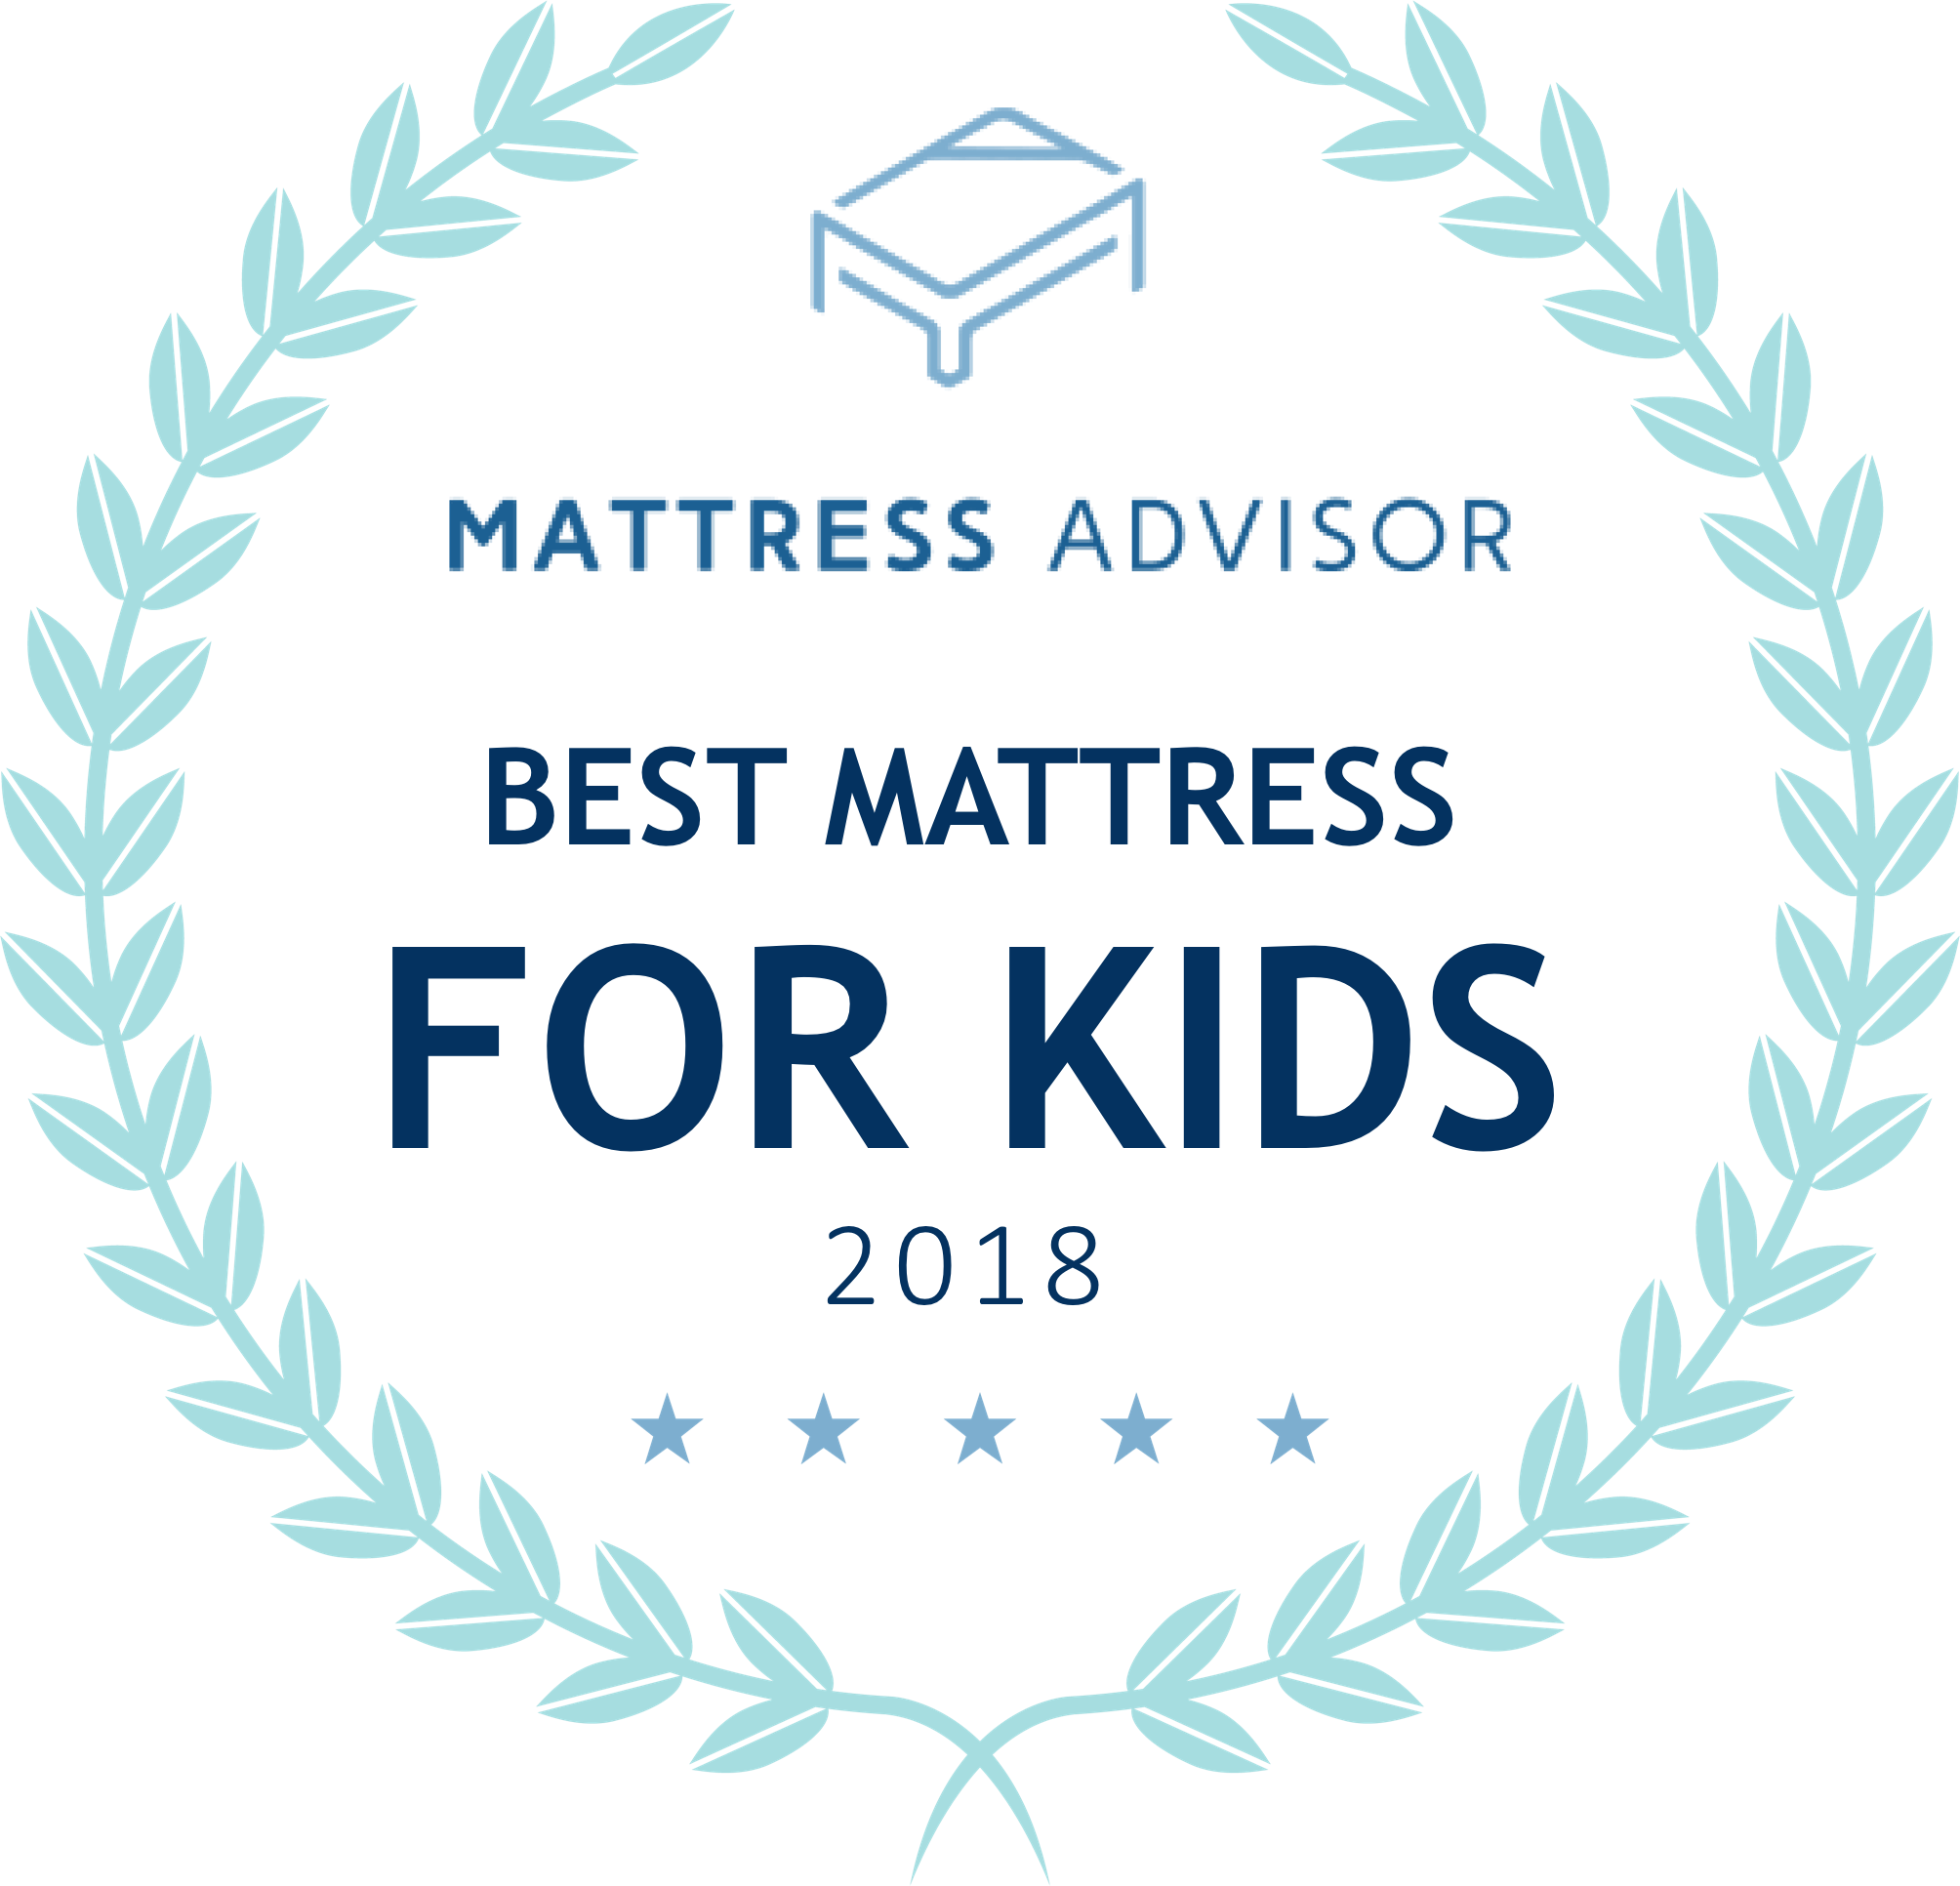 Best mattress for Kids 2018 award